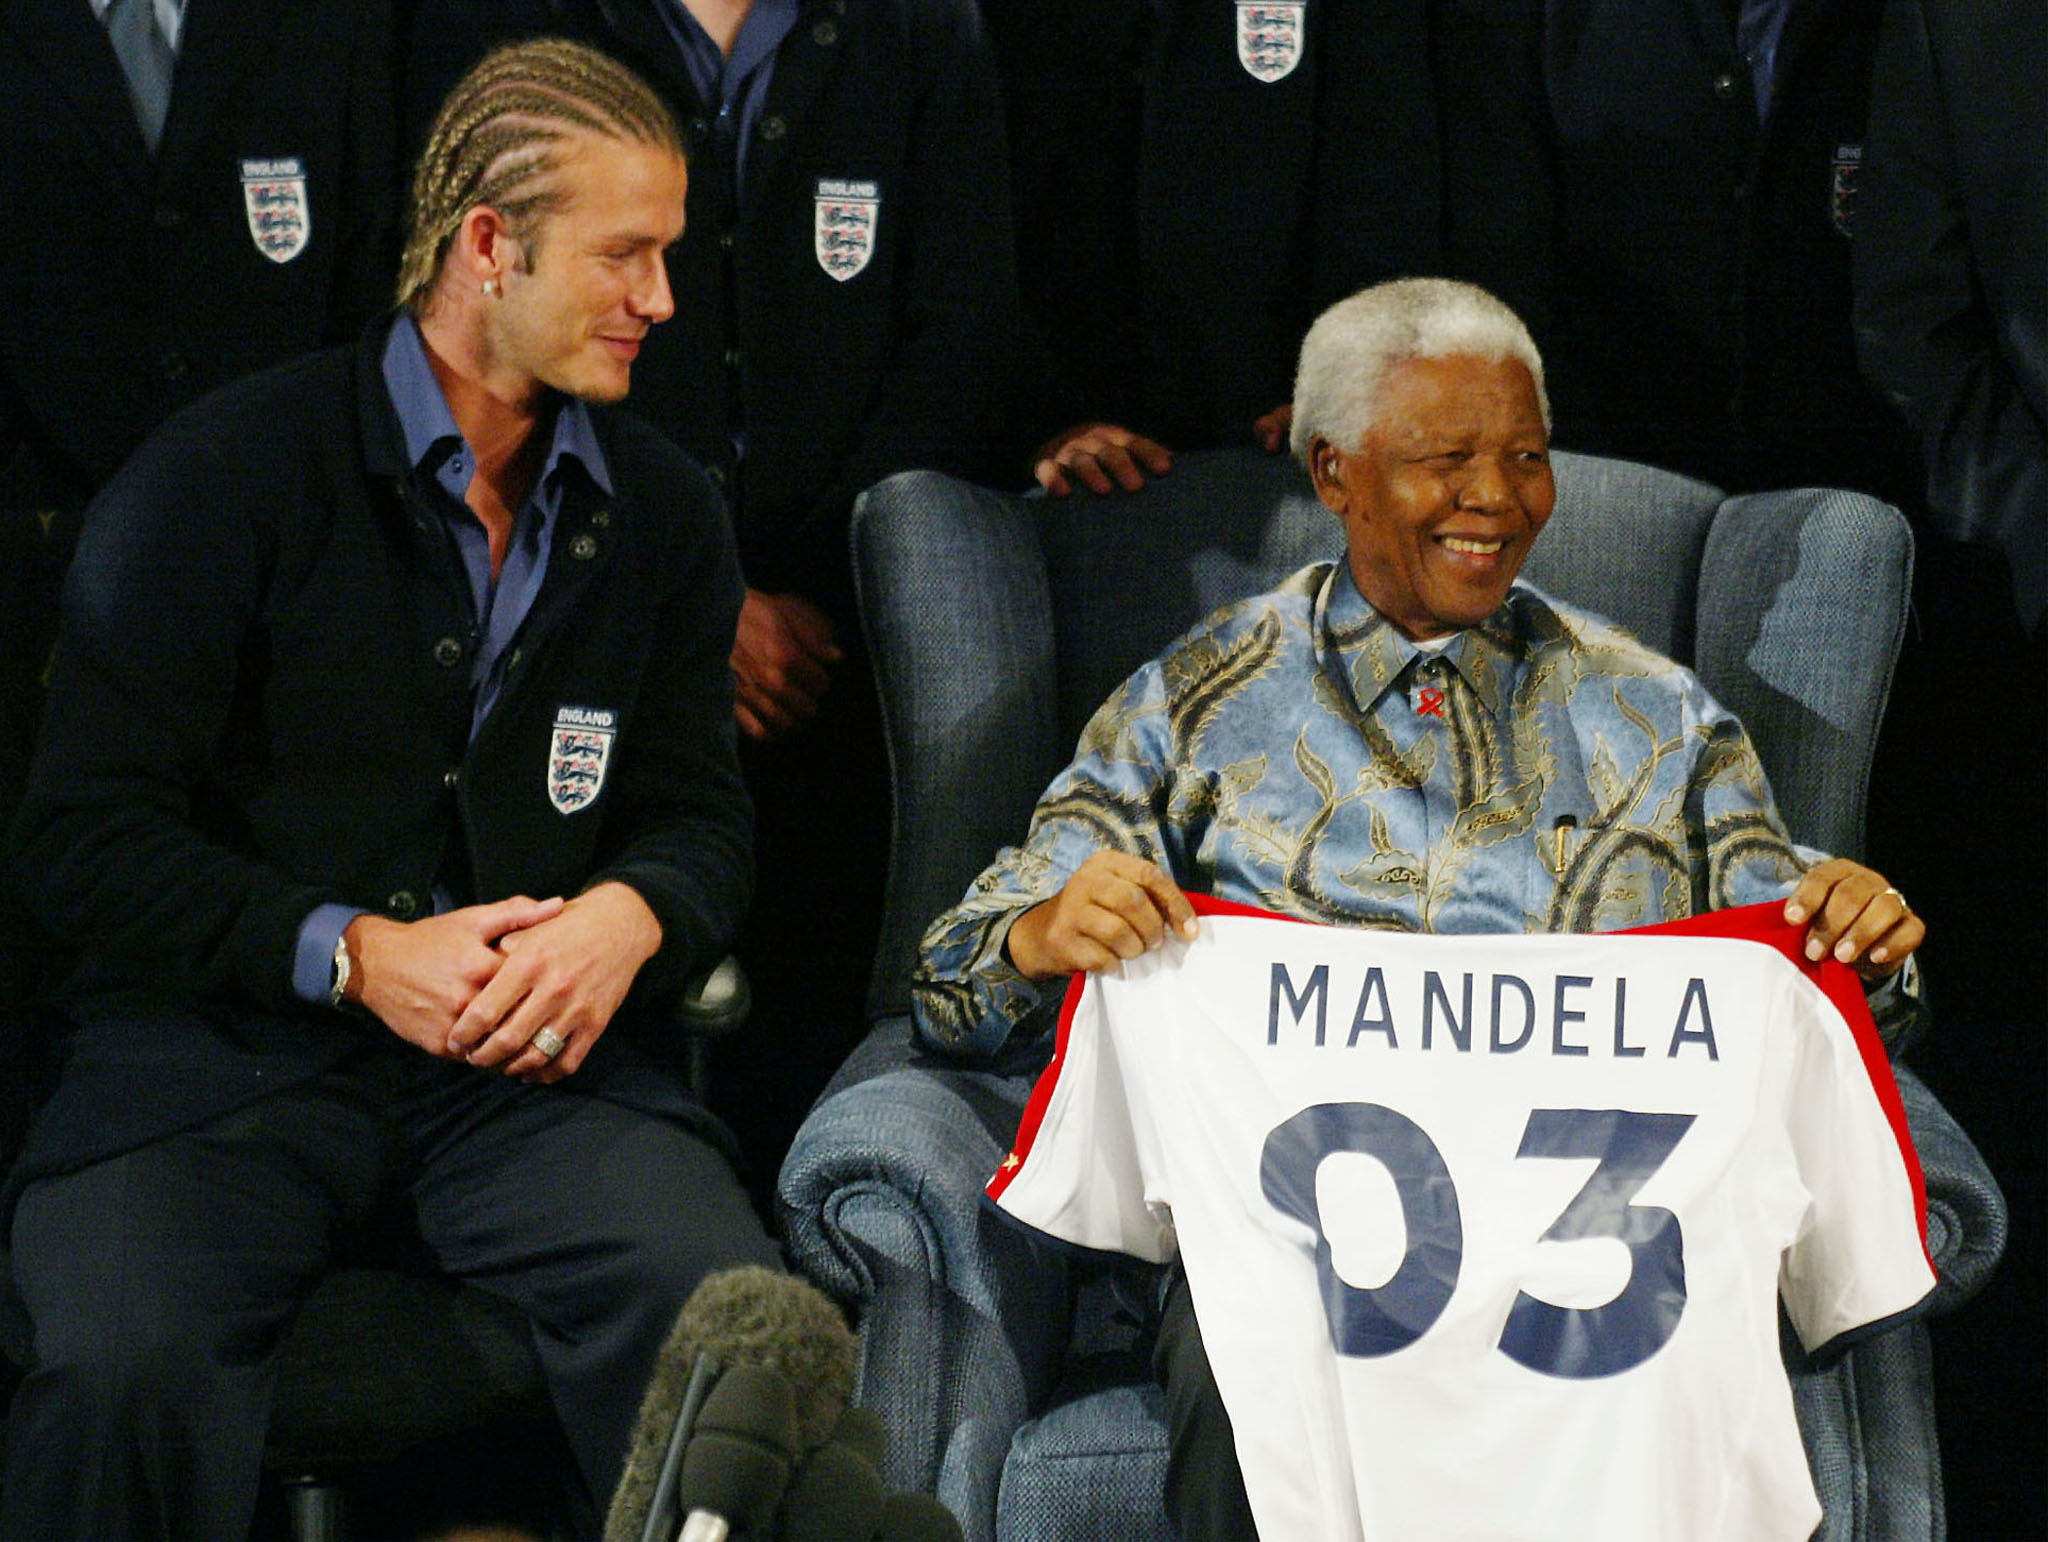 Former South African President Nelson Mandela smiles as he holds up an England soccer shirt he was presented with by England soccer captain David Beckham on behalf of the team, during a meeting at Nelson Mandelas' Foundations office in Johannesburg May 21,2003.